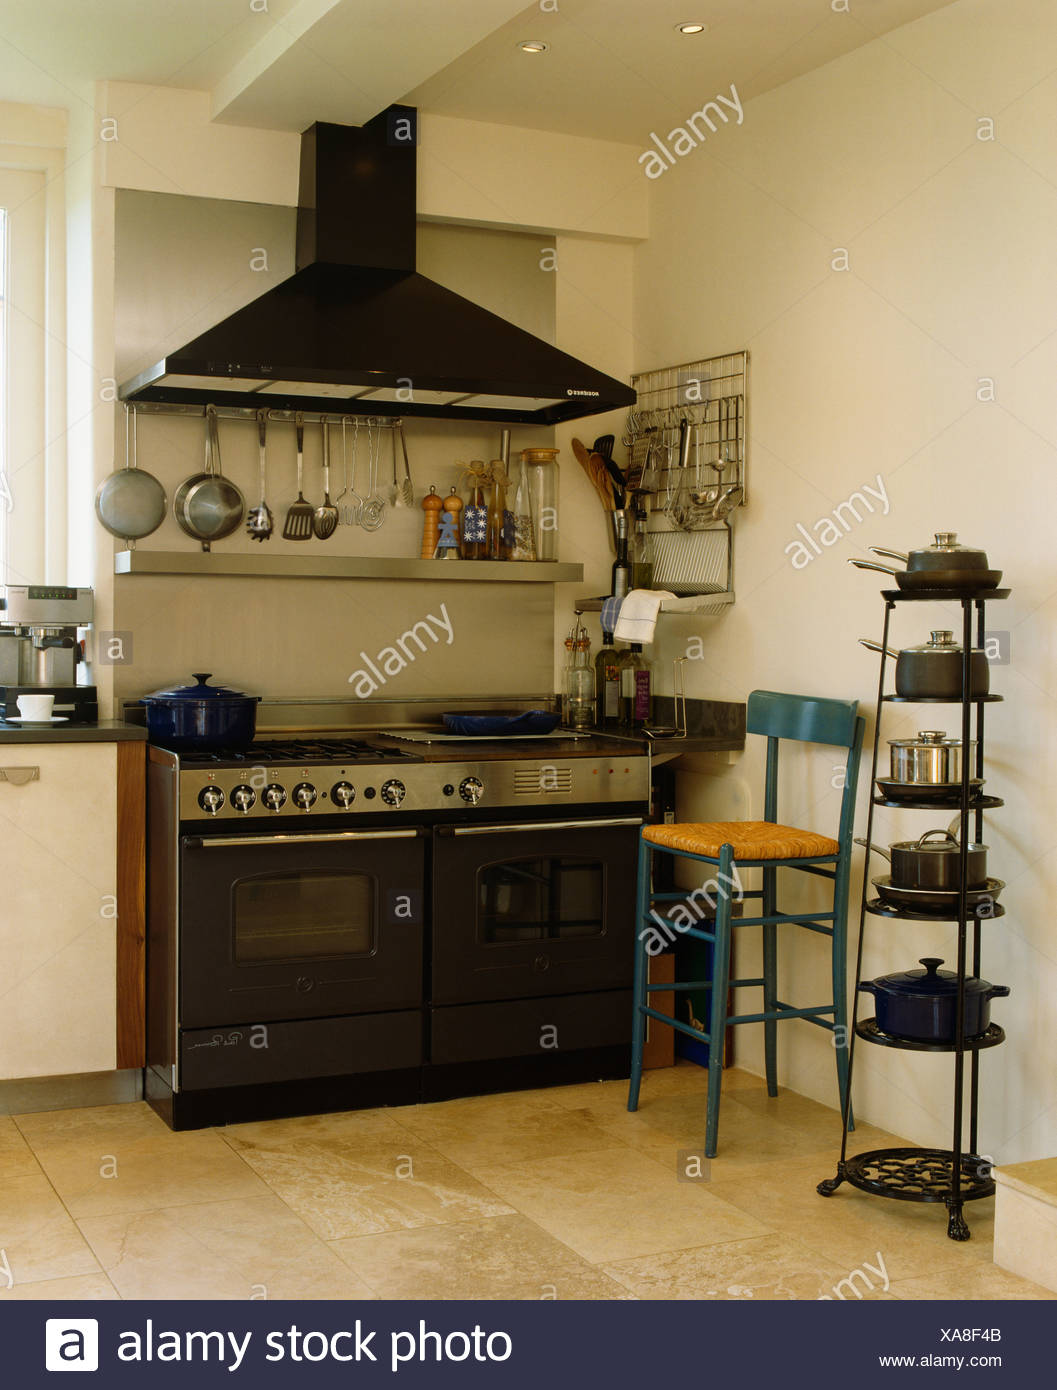 Extractor Above Black Range Oven In Modern Kitchen With Freestanding Pan  Storage Rack